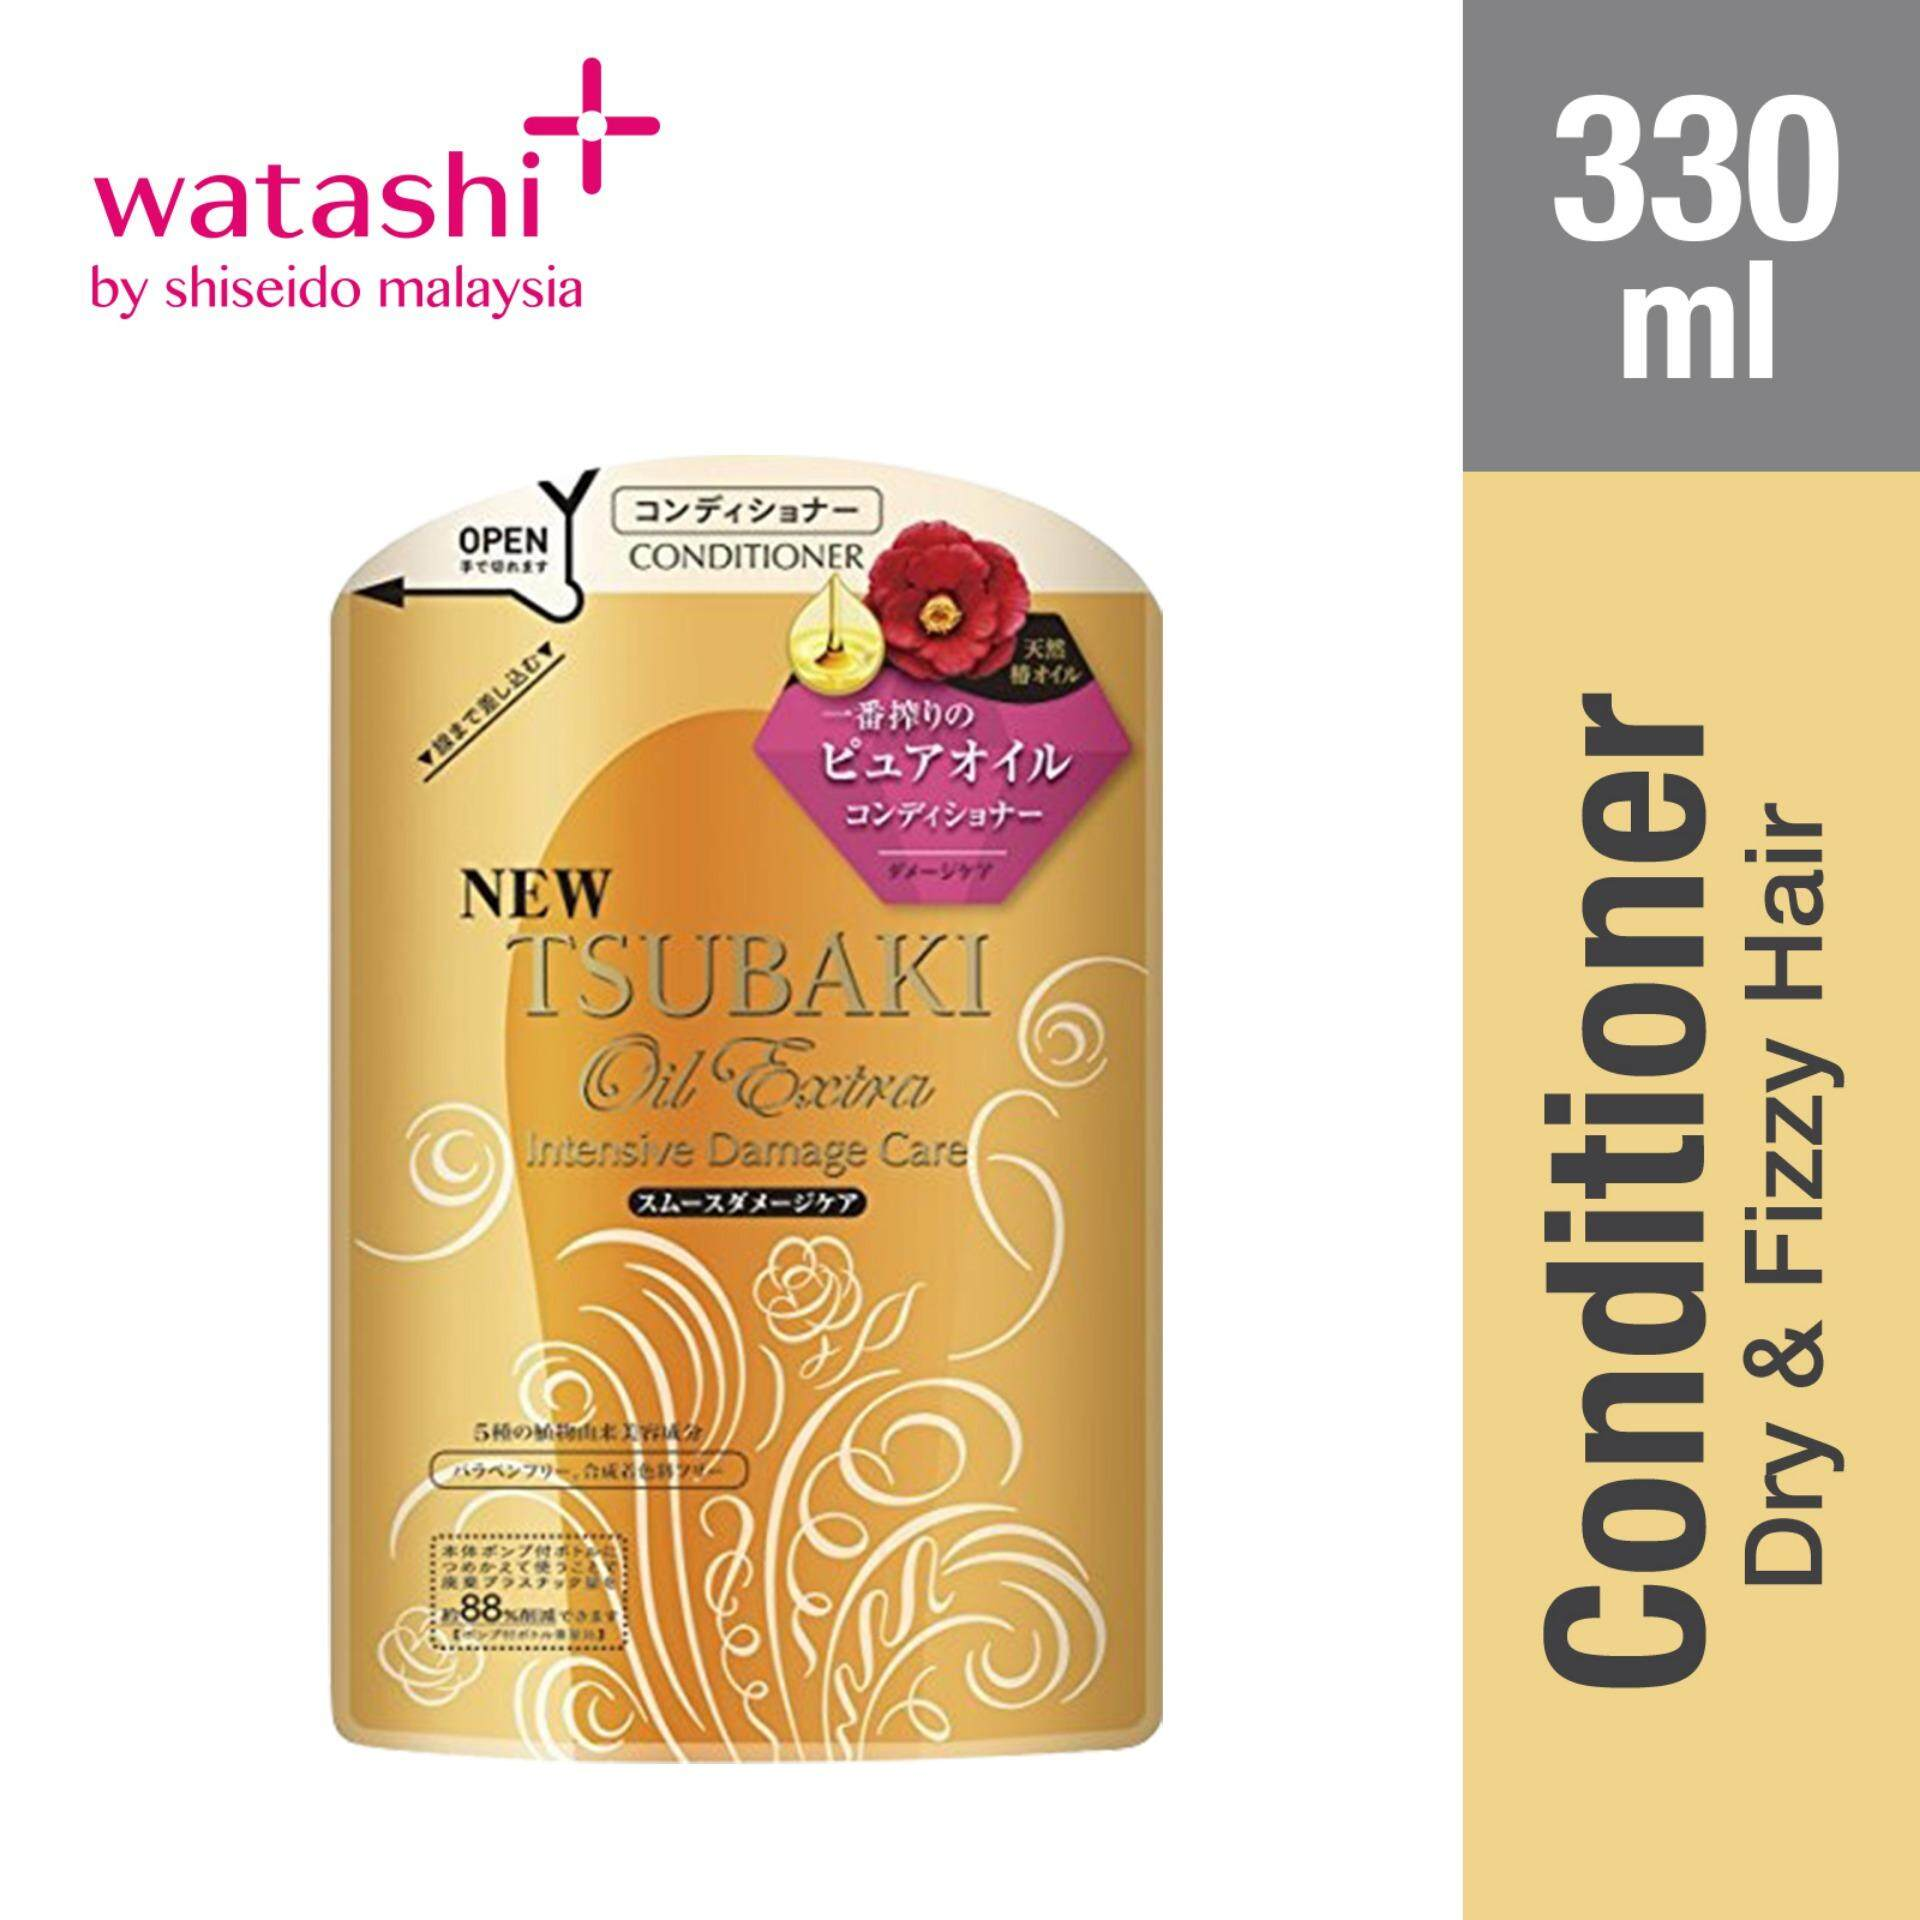 Tsubaki Oil Extra Intensive Damage Care Conditioner (refill) 330ml By Jbeauty By Shiseido.